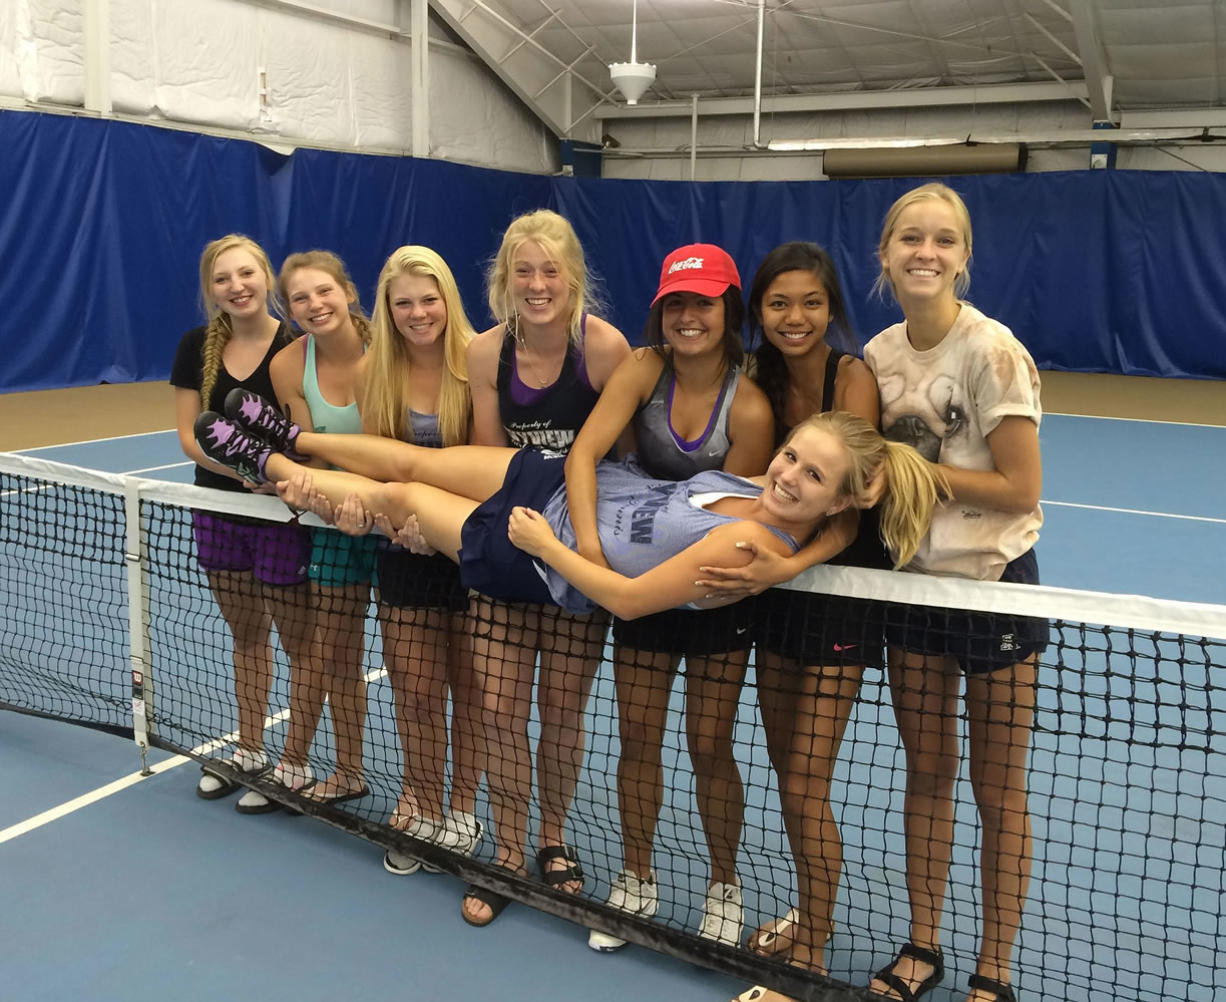 Skyview teammates hold up senior Sammi Hampton on the net on Saturday at the Columbia Basin Racquet Club in Richland after Hampton was declared the Class 4A singles champion for a fourth year in a row.